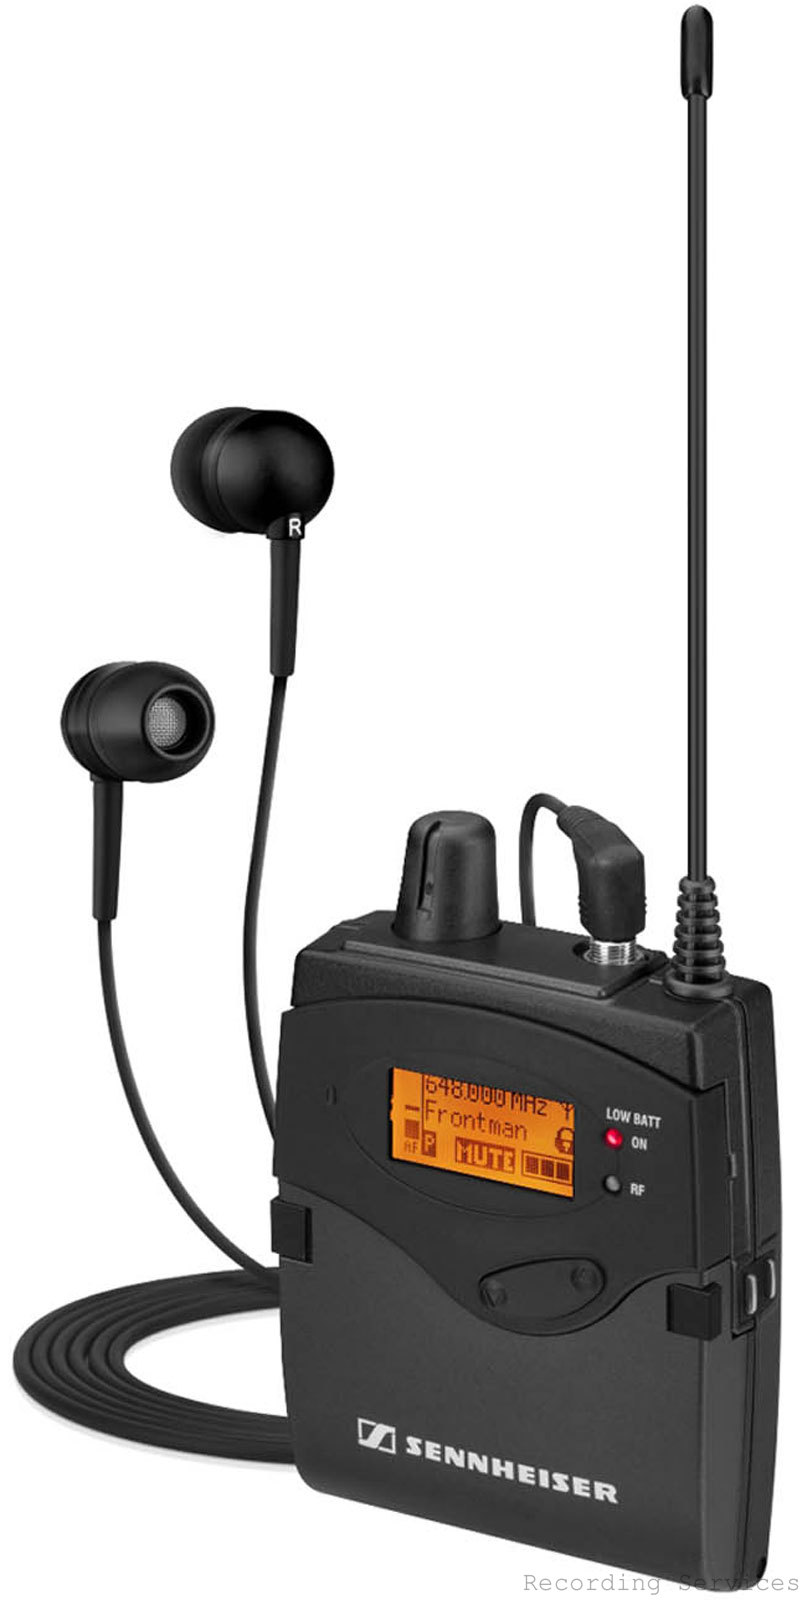 sennheiser ew 300 iem g3 in ear wireless monitor system ew300 recording services and supply. Black Bedroom Furniture Sets. Home Design Ideas